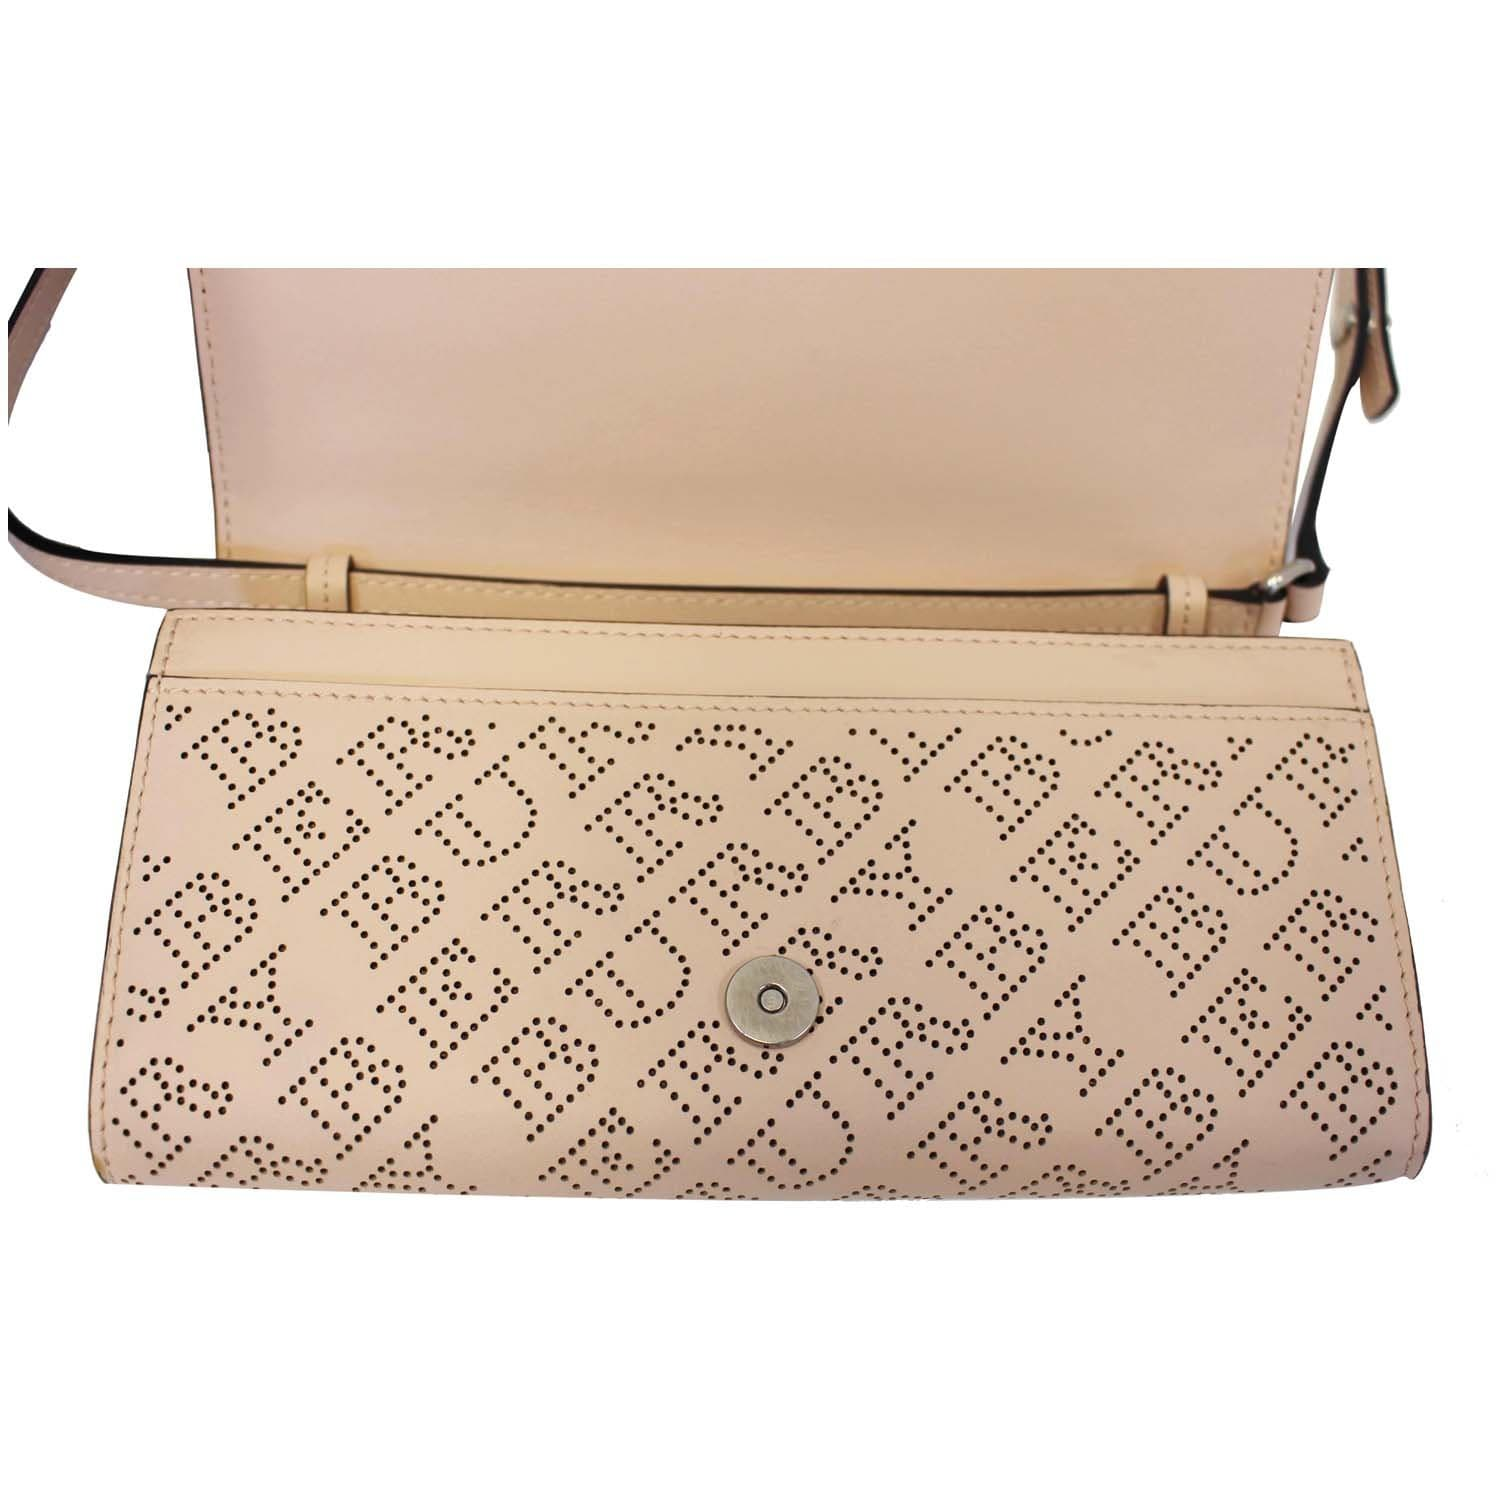 b2c91673464c BURBERRY Hampshire Perforated Leather Crossbody Bag-US